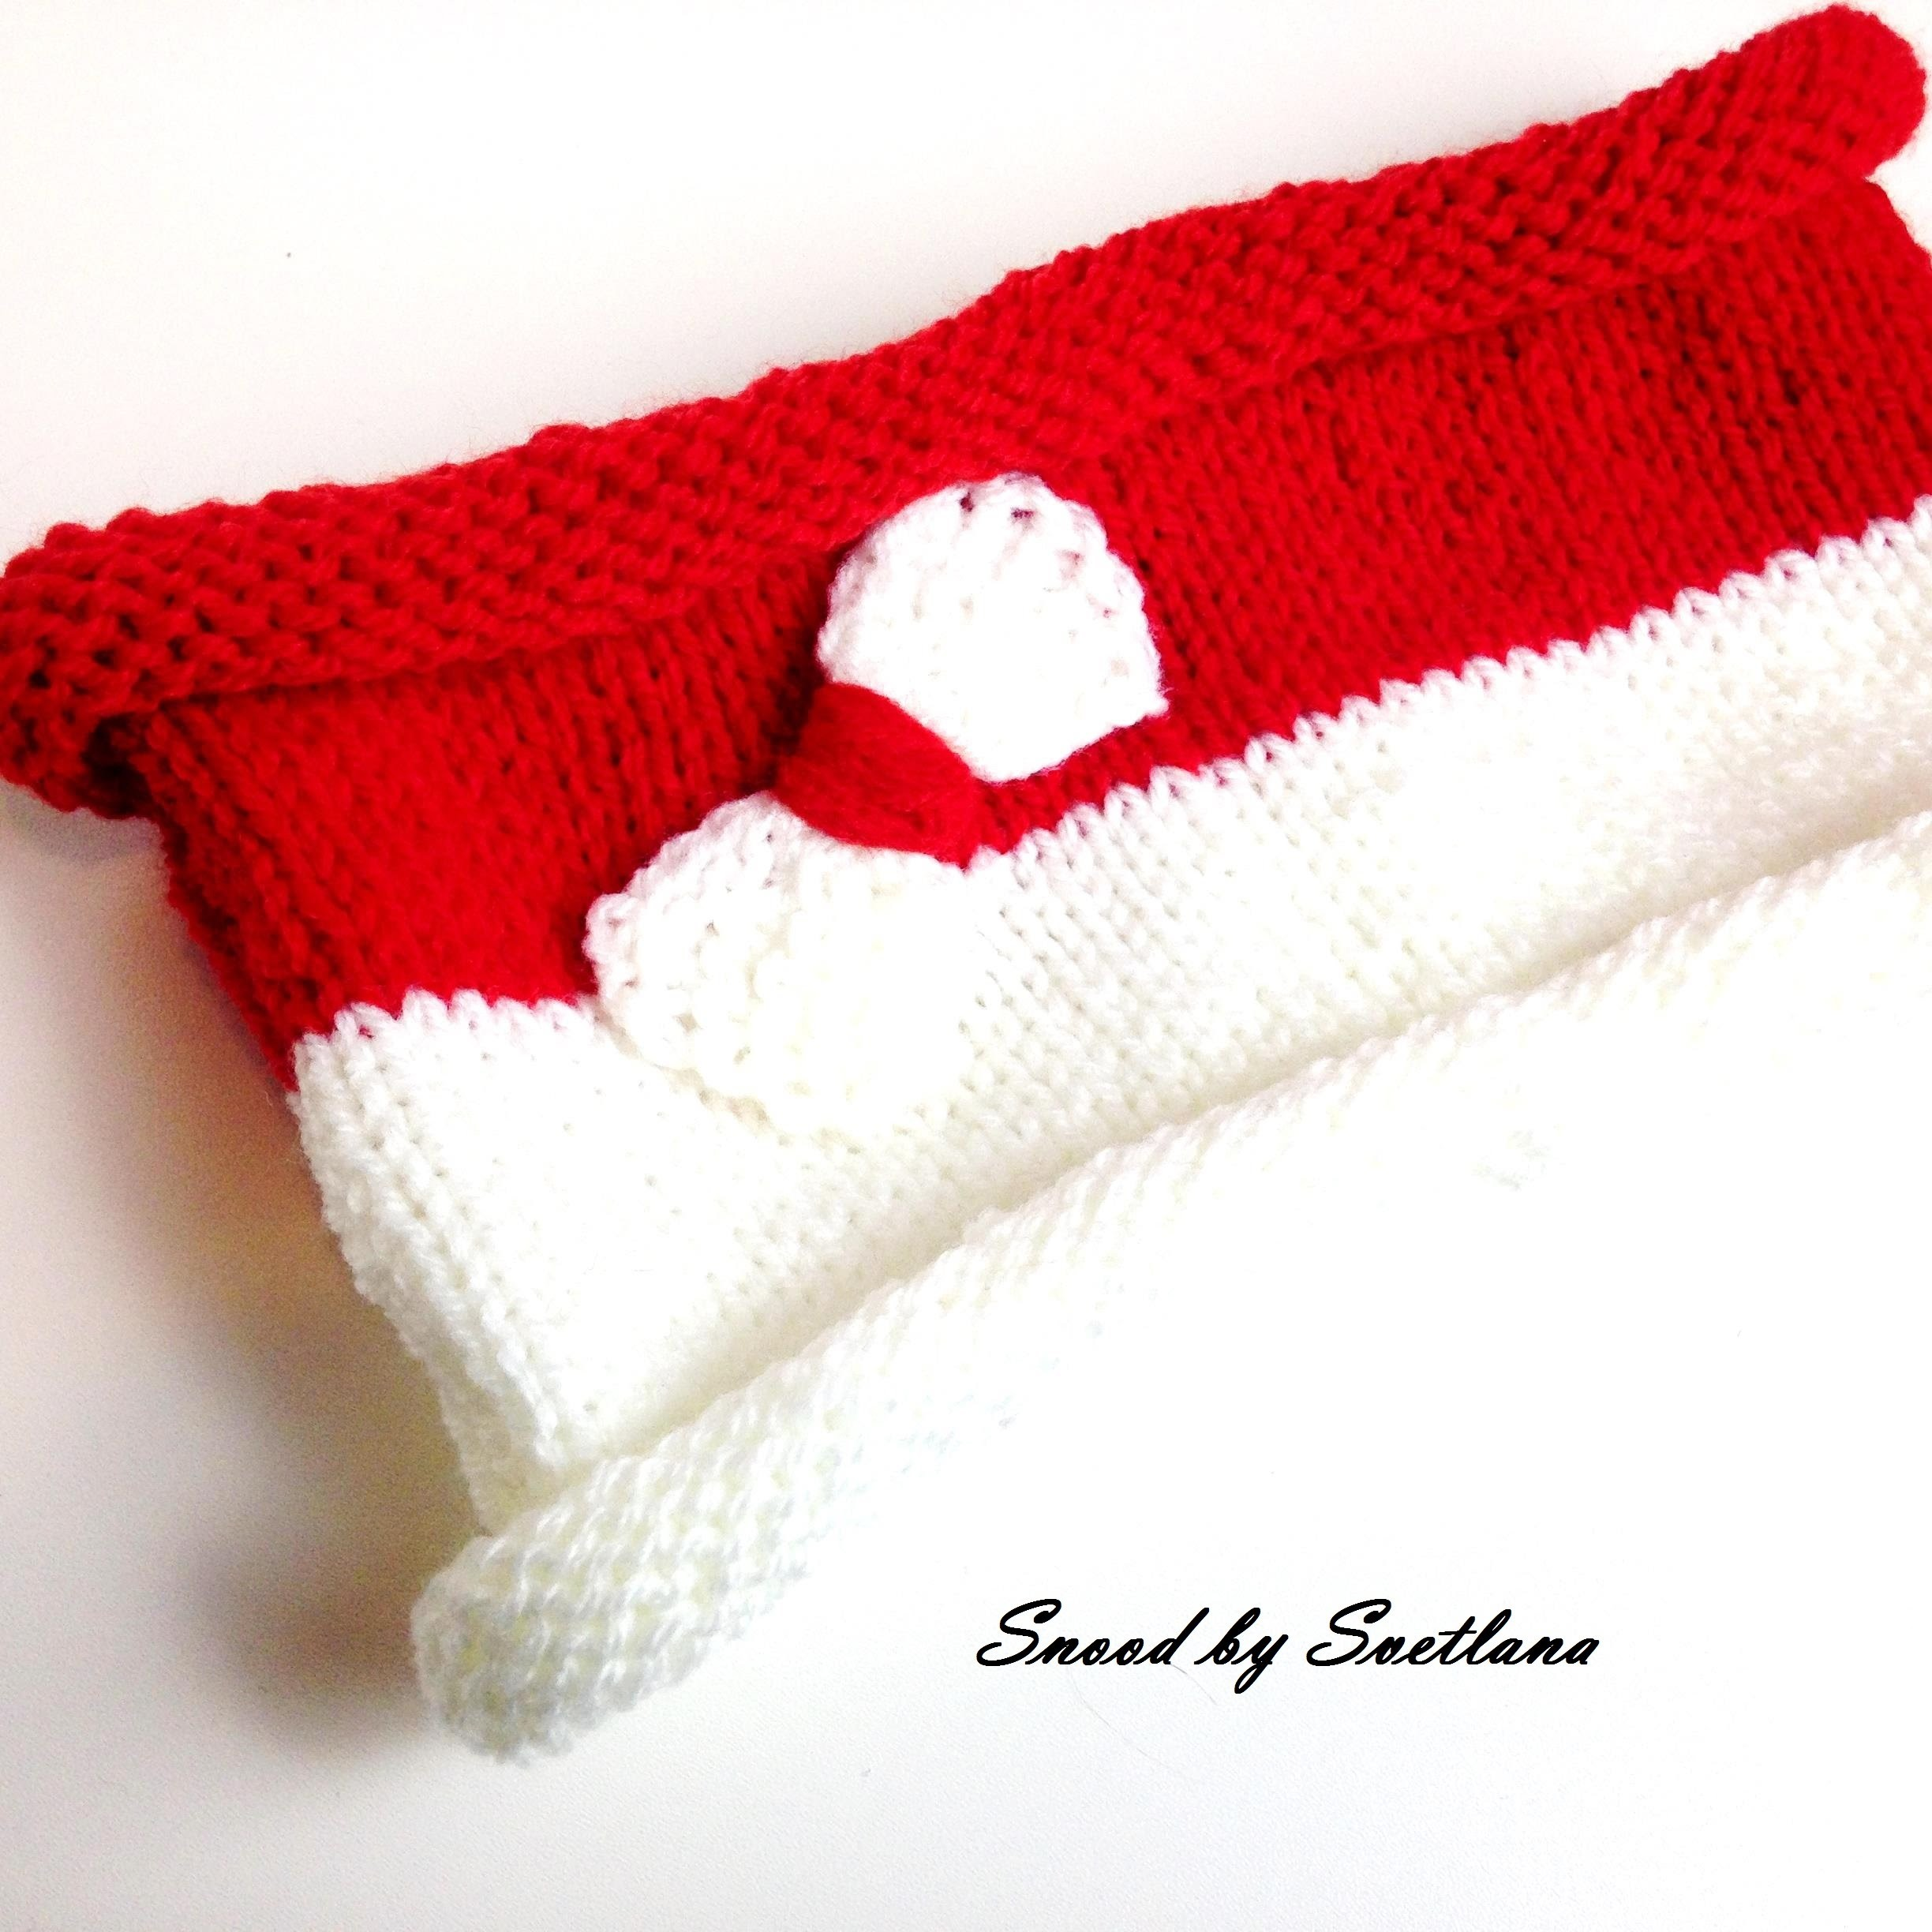 Tutoriel tricot snood simple. Tutorial knitting snood easy